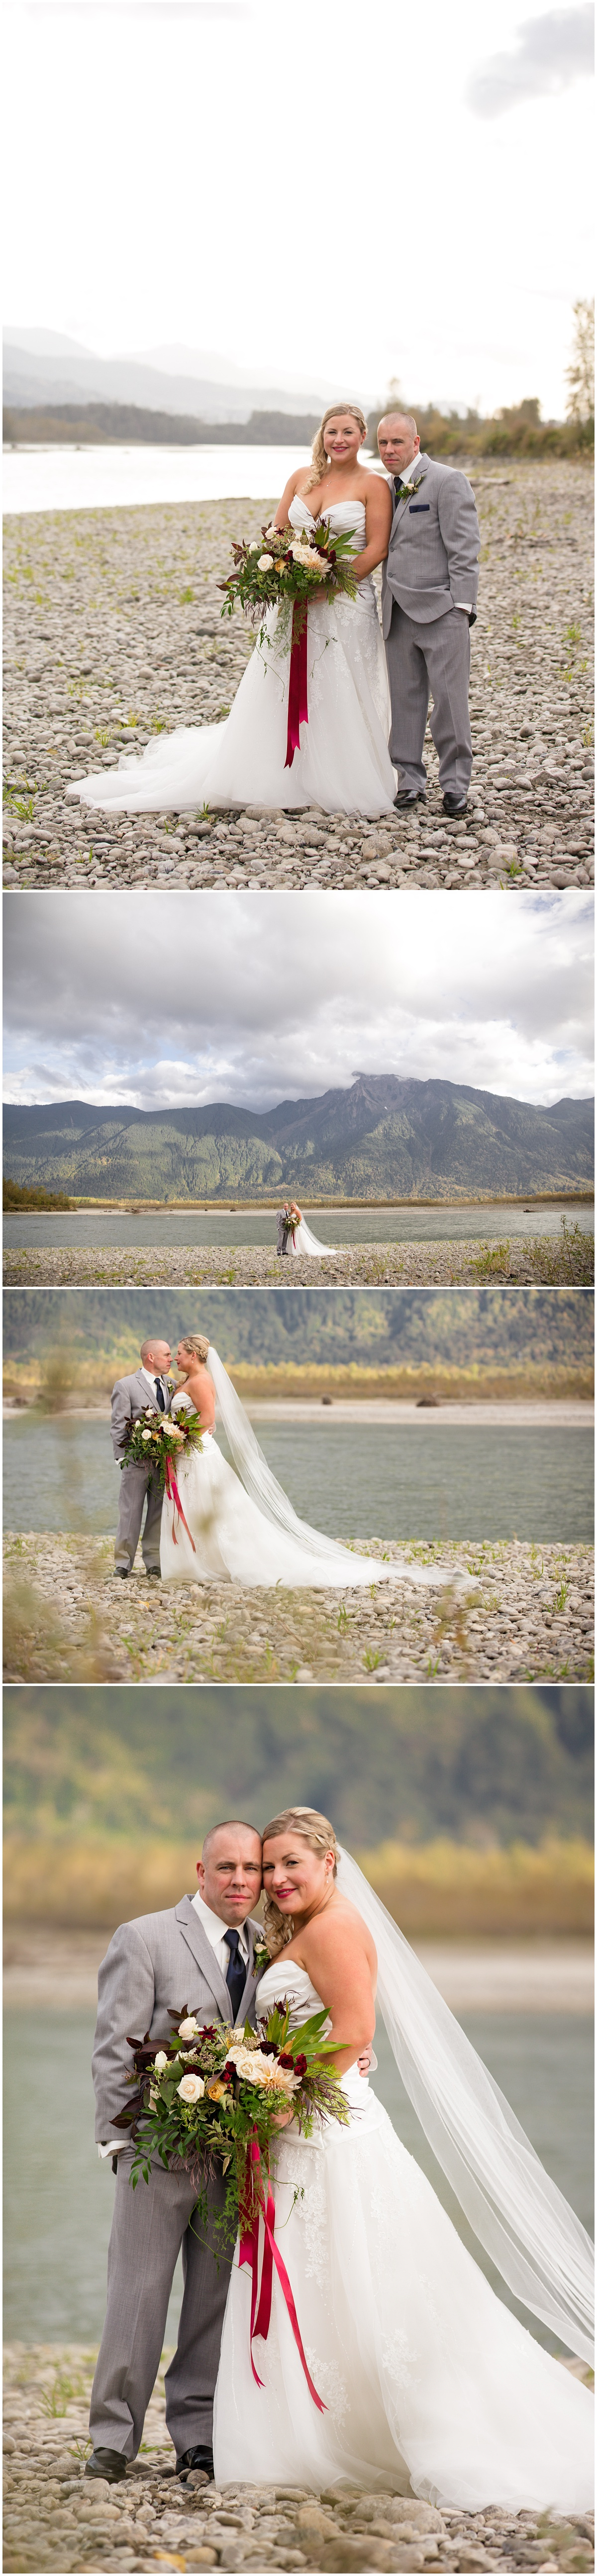 Amazing Day Photography - Fraser River Lodge Wedding - Fall Wedding - Fraser Valley Wedding Photographer - Langley Wedding Photographer (36).jpg